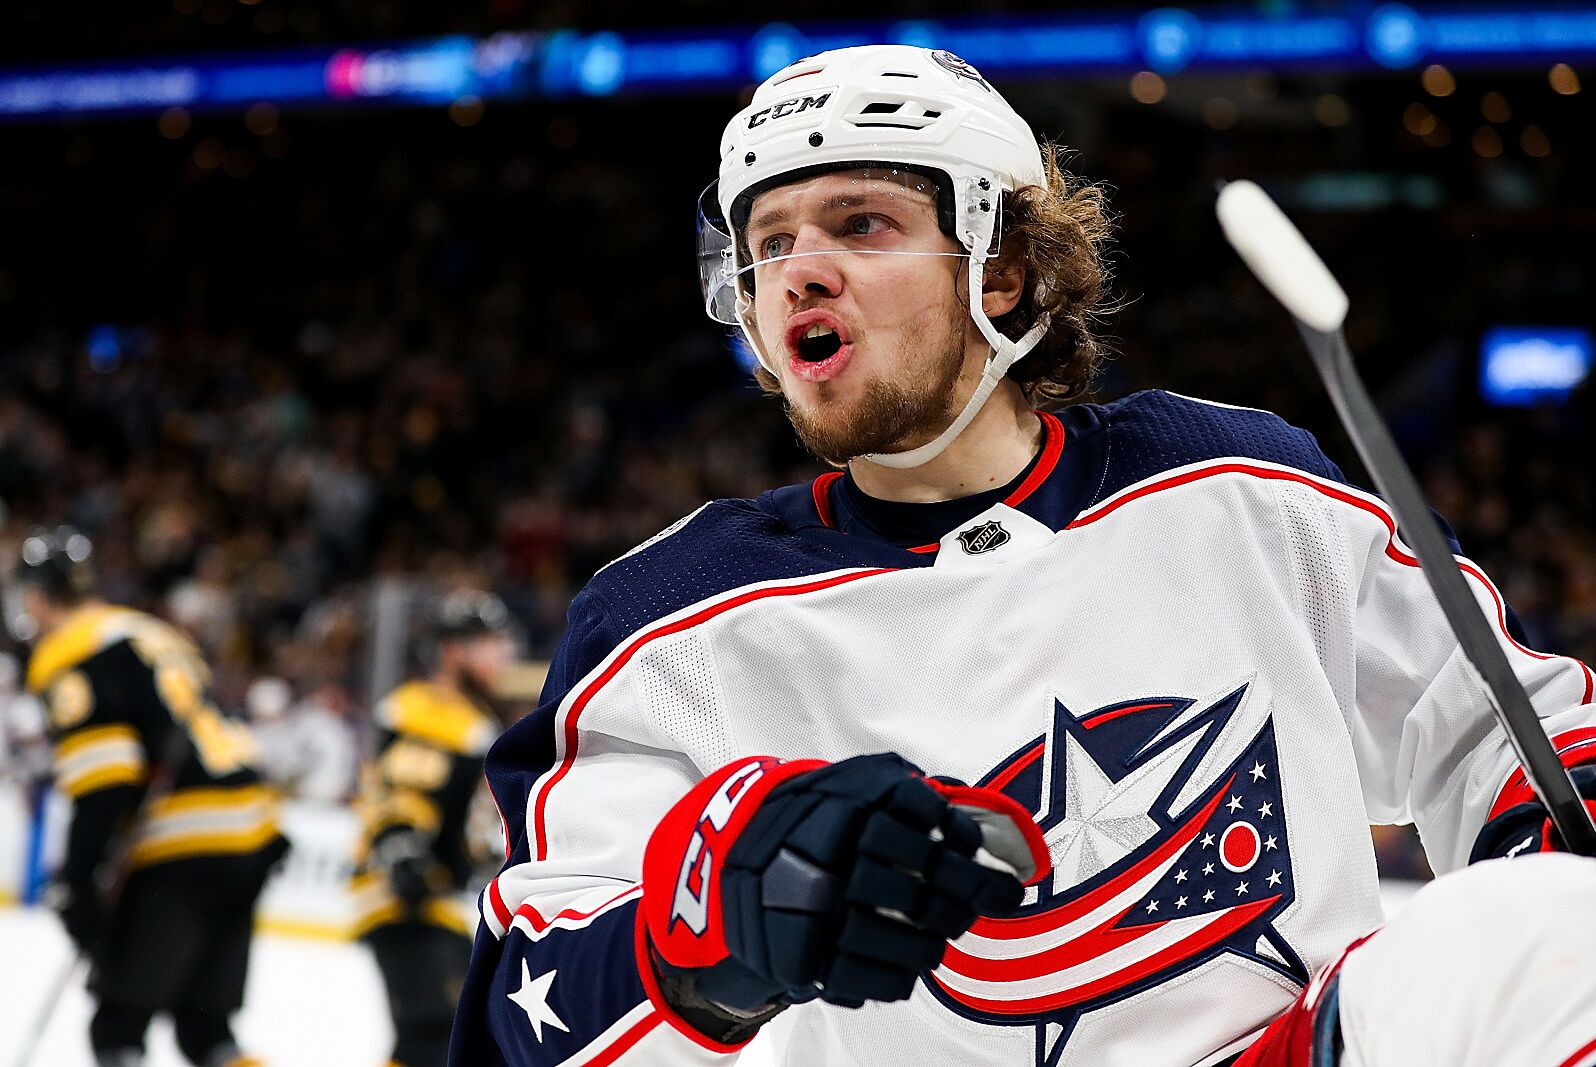 New York Islanders: Reaction to every free agency move, including missing out on Panarin